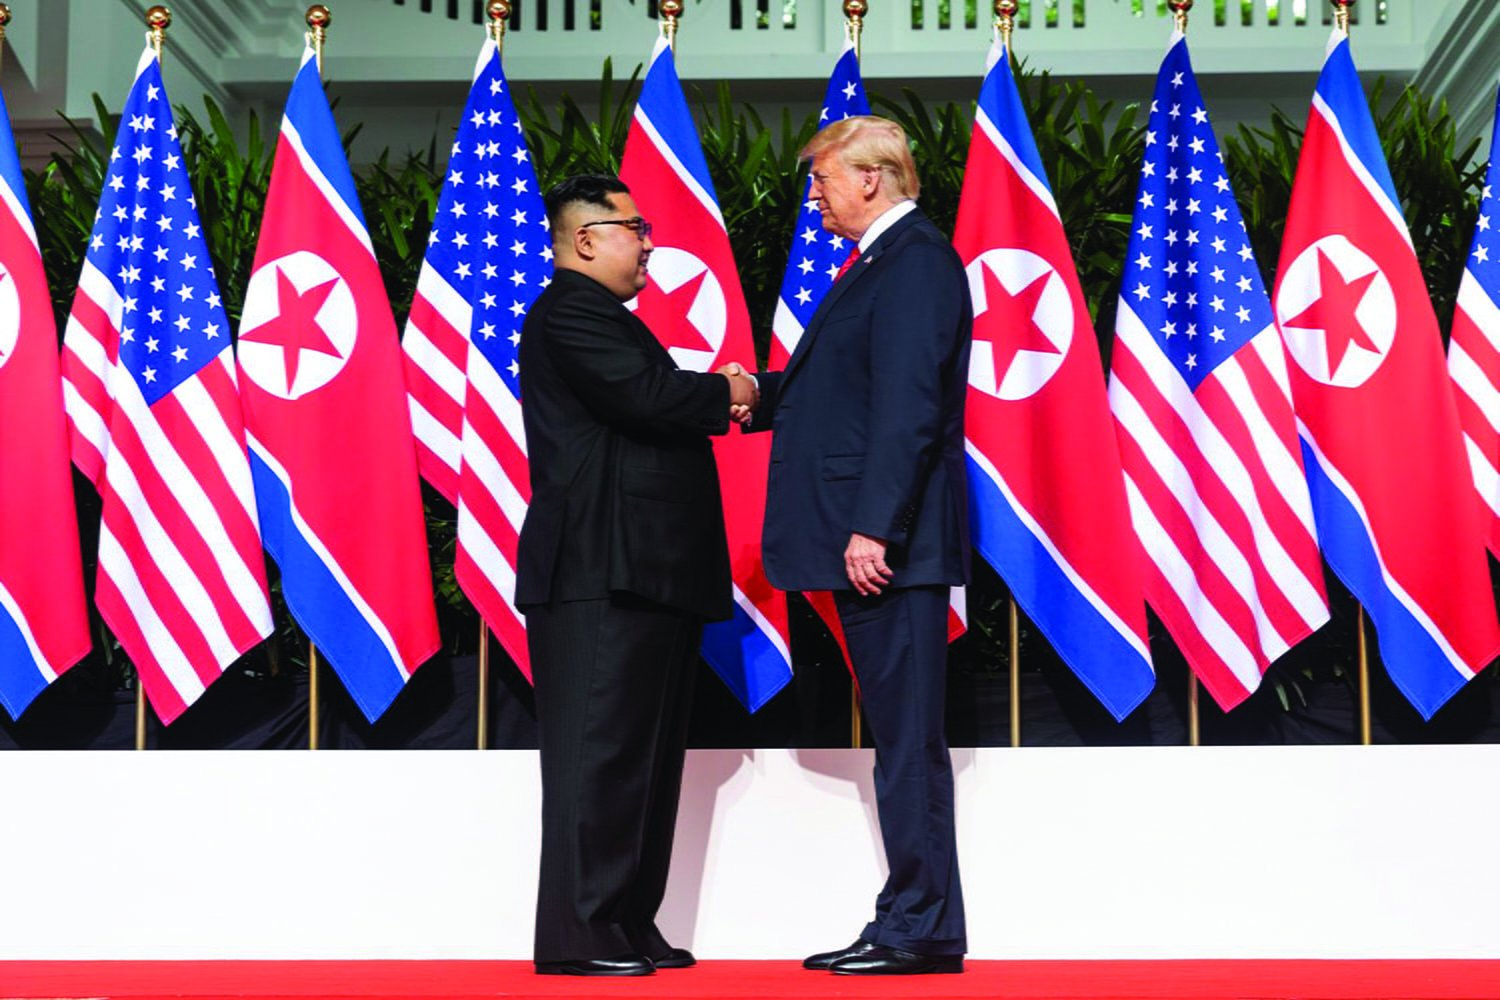 President Donald Trump shakes hands with North Korean Supreme Leader Kim Jong-un on June 12,, 2018, in Singapore. This is the first time a U.S. president has met with a North Korean ruler. // Photo courtesy of Wikimedia Commons